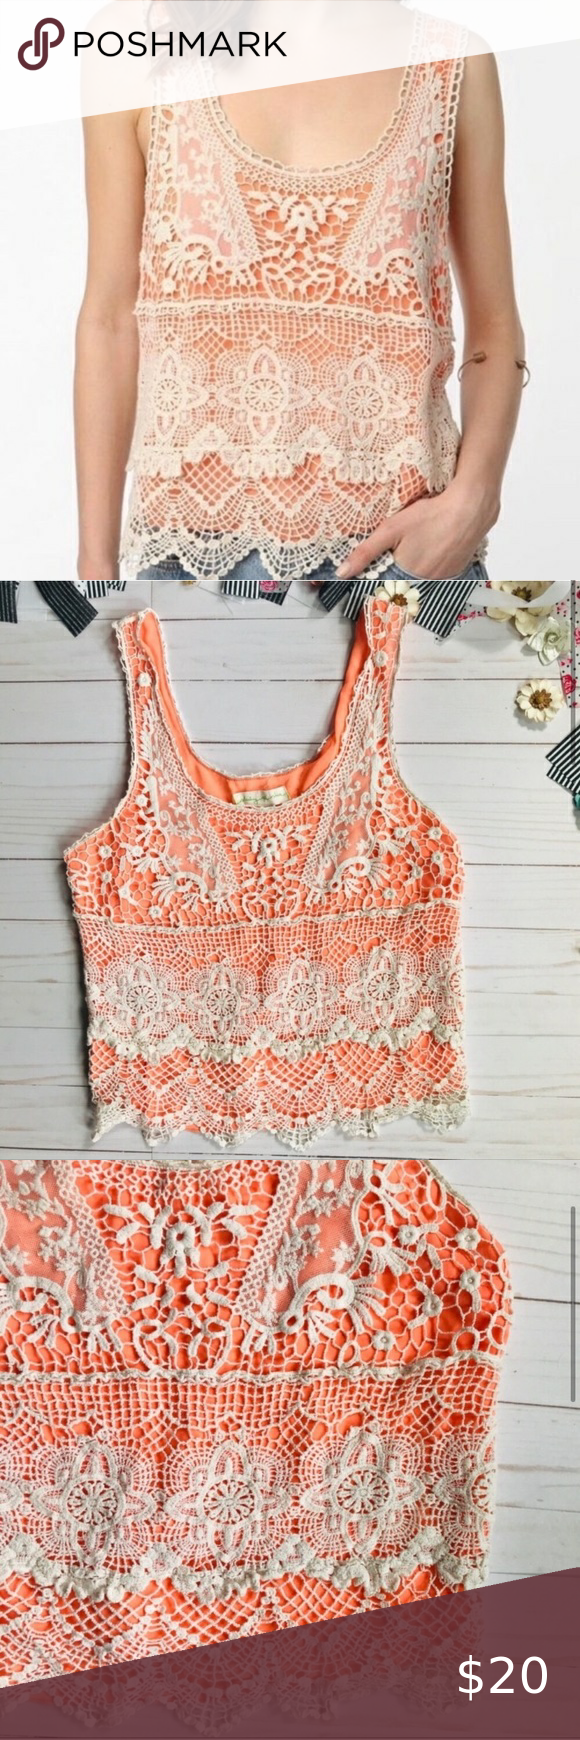 , Urban Outfitters Boho Lace Chiffon Tank Top SZ S This Urban Outfitters Staring at Stars Brand tank top is perfect for festivals concerts and vacation!…, My Pop Star Kda Blog, My Pop Star Kda Blog